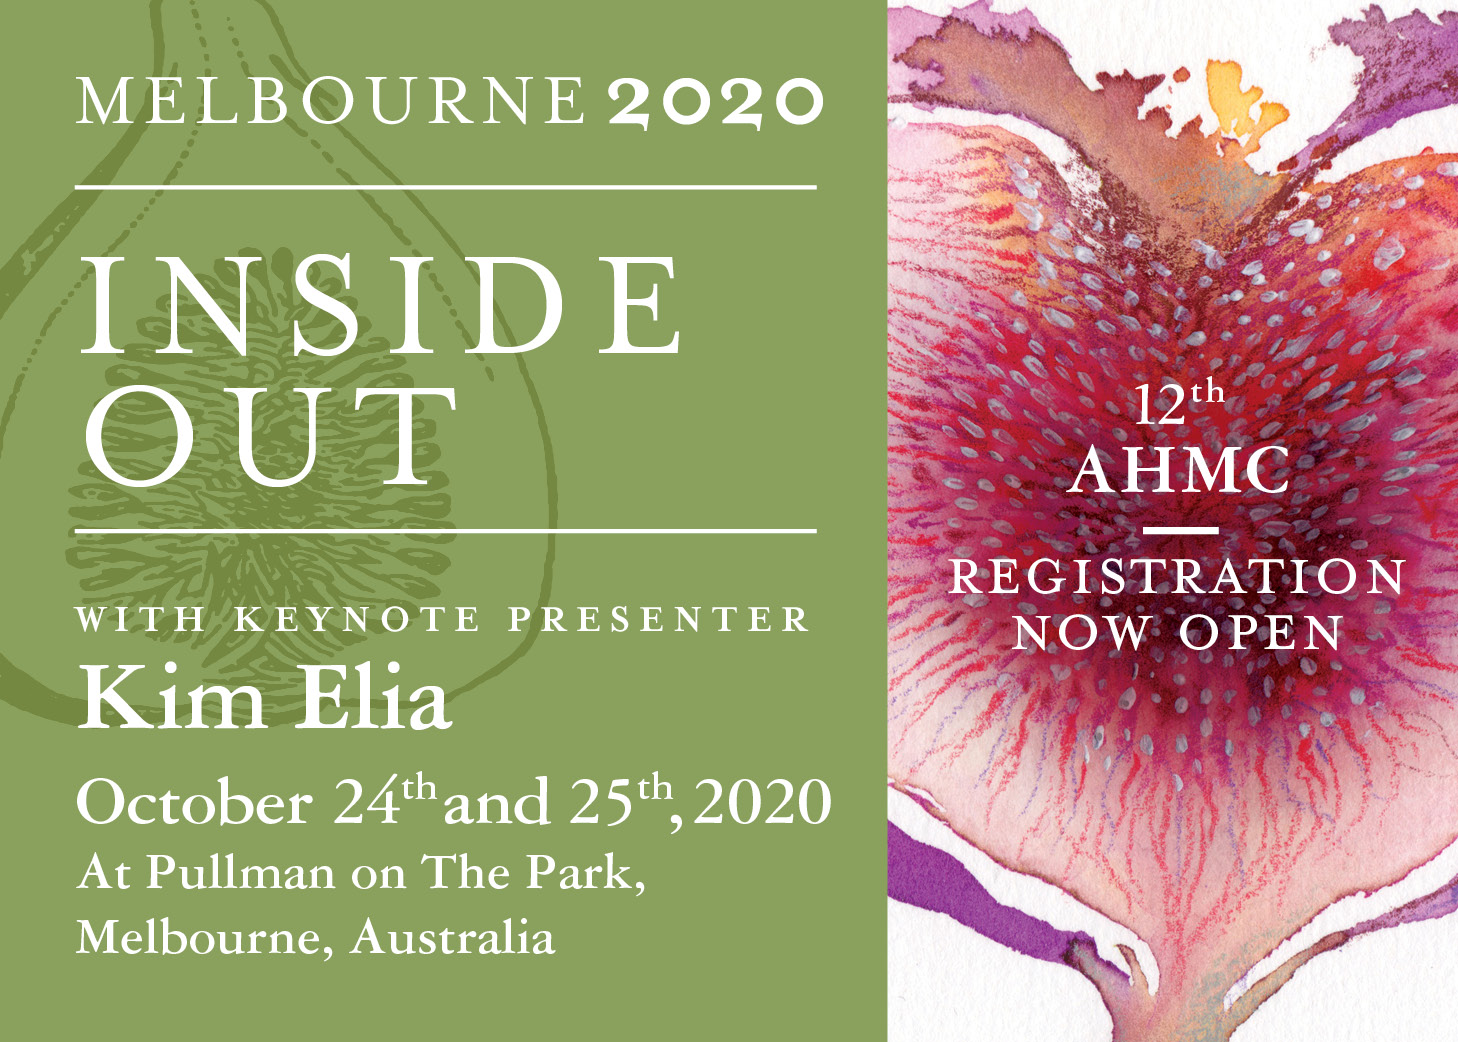 INSIDE OUT 500h x 770w REG NOW OPEN Jan 2020